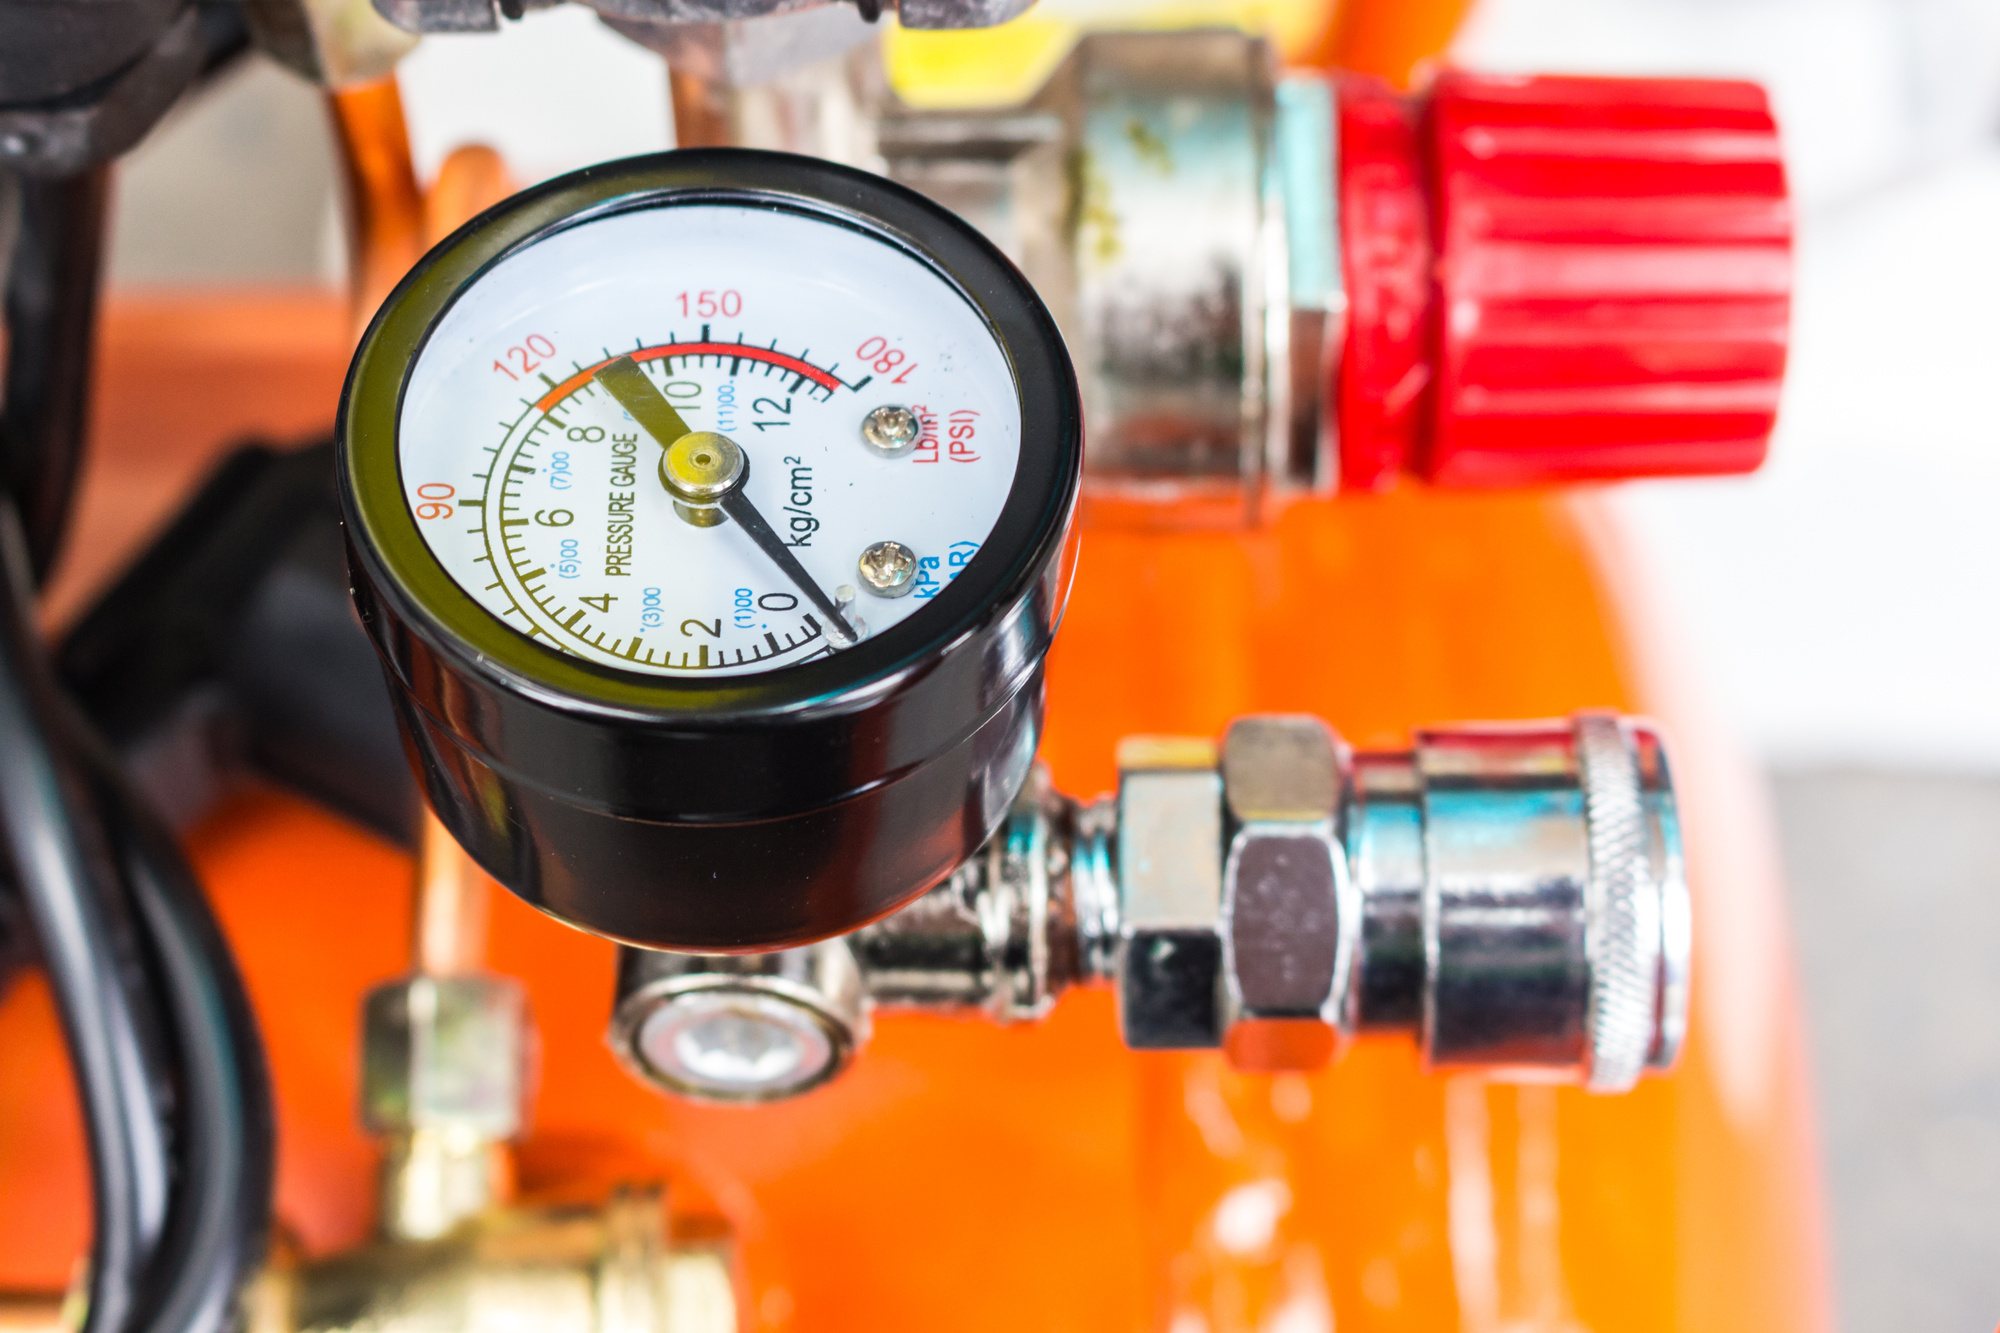 How To Use An Air Compressor >> 5 Things To Consider When Choosing An Air Compressor For Home Use